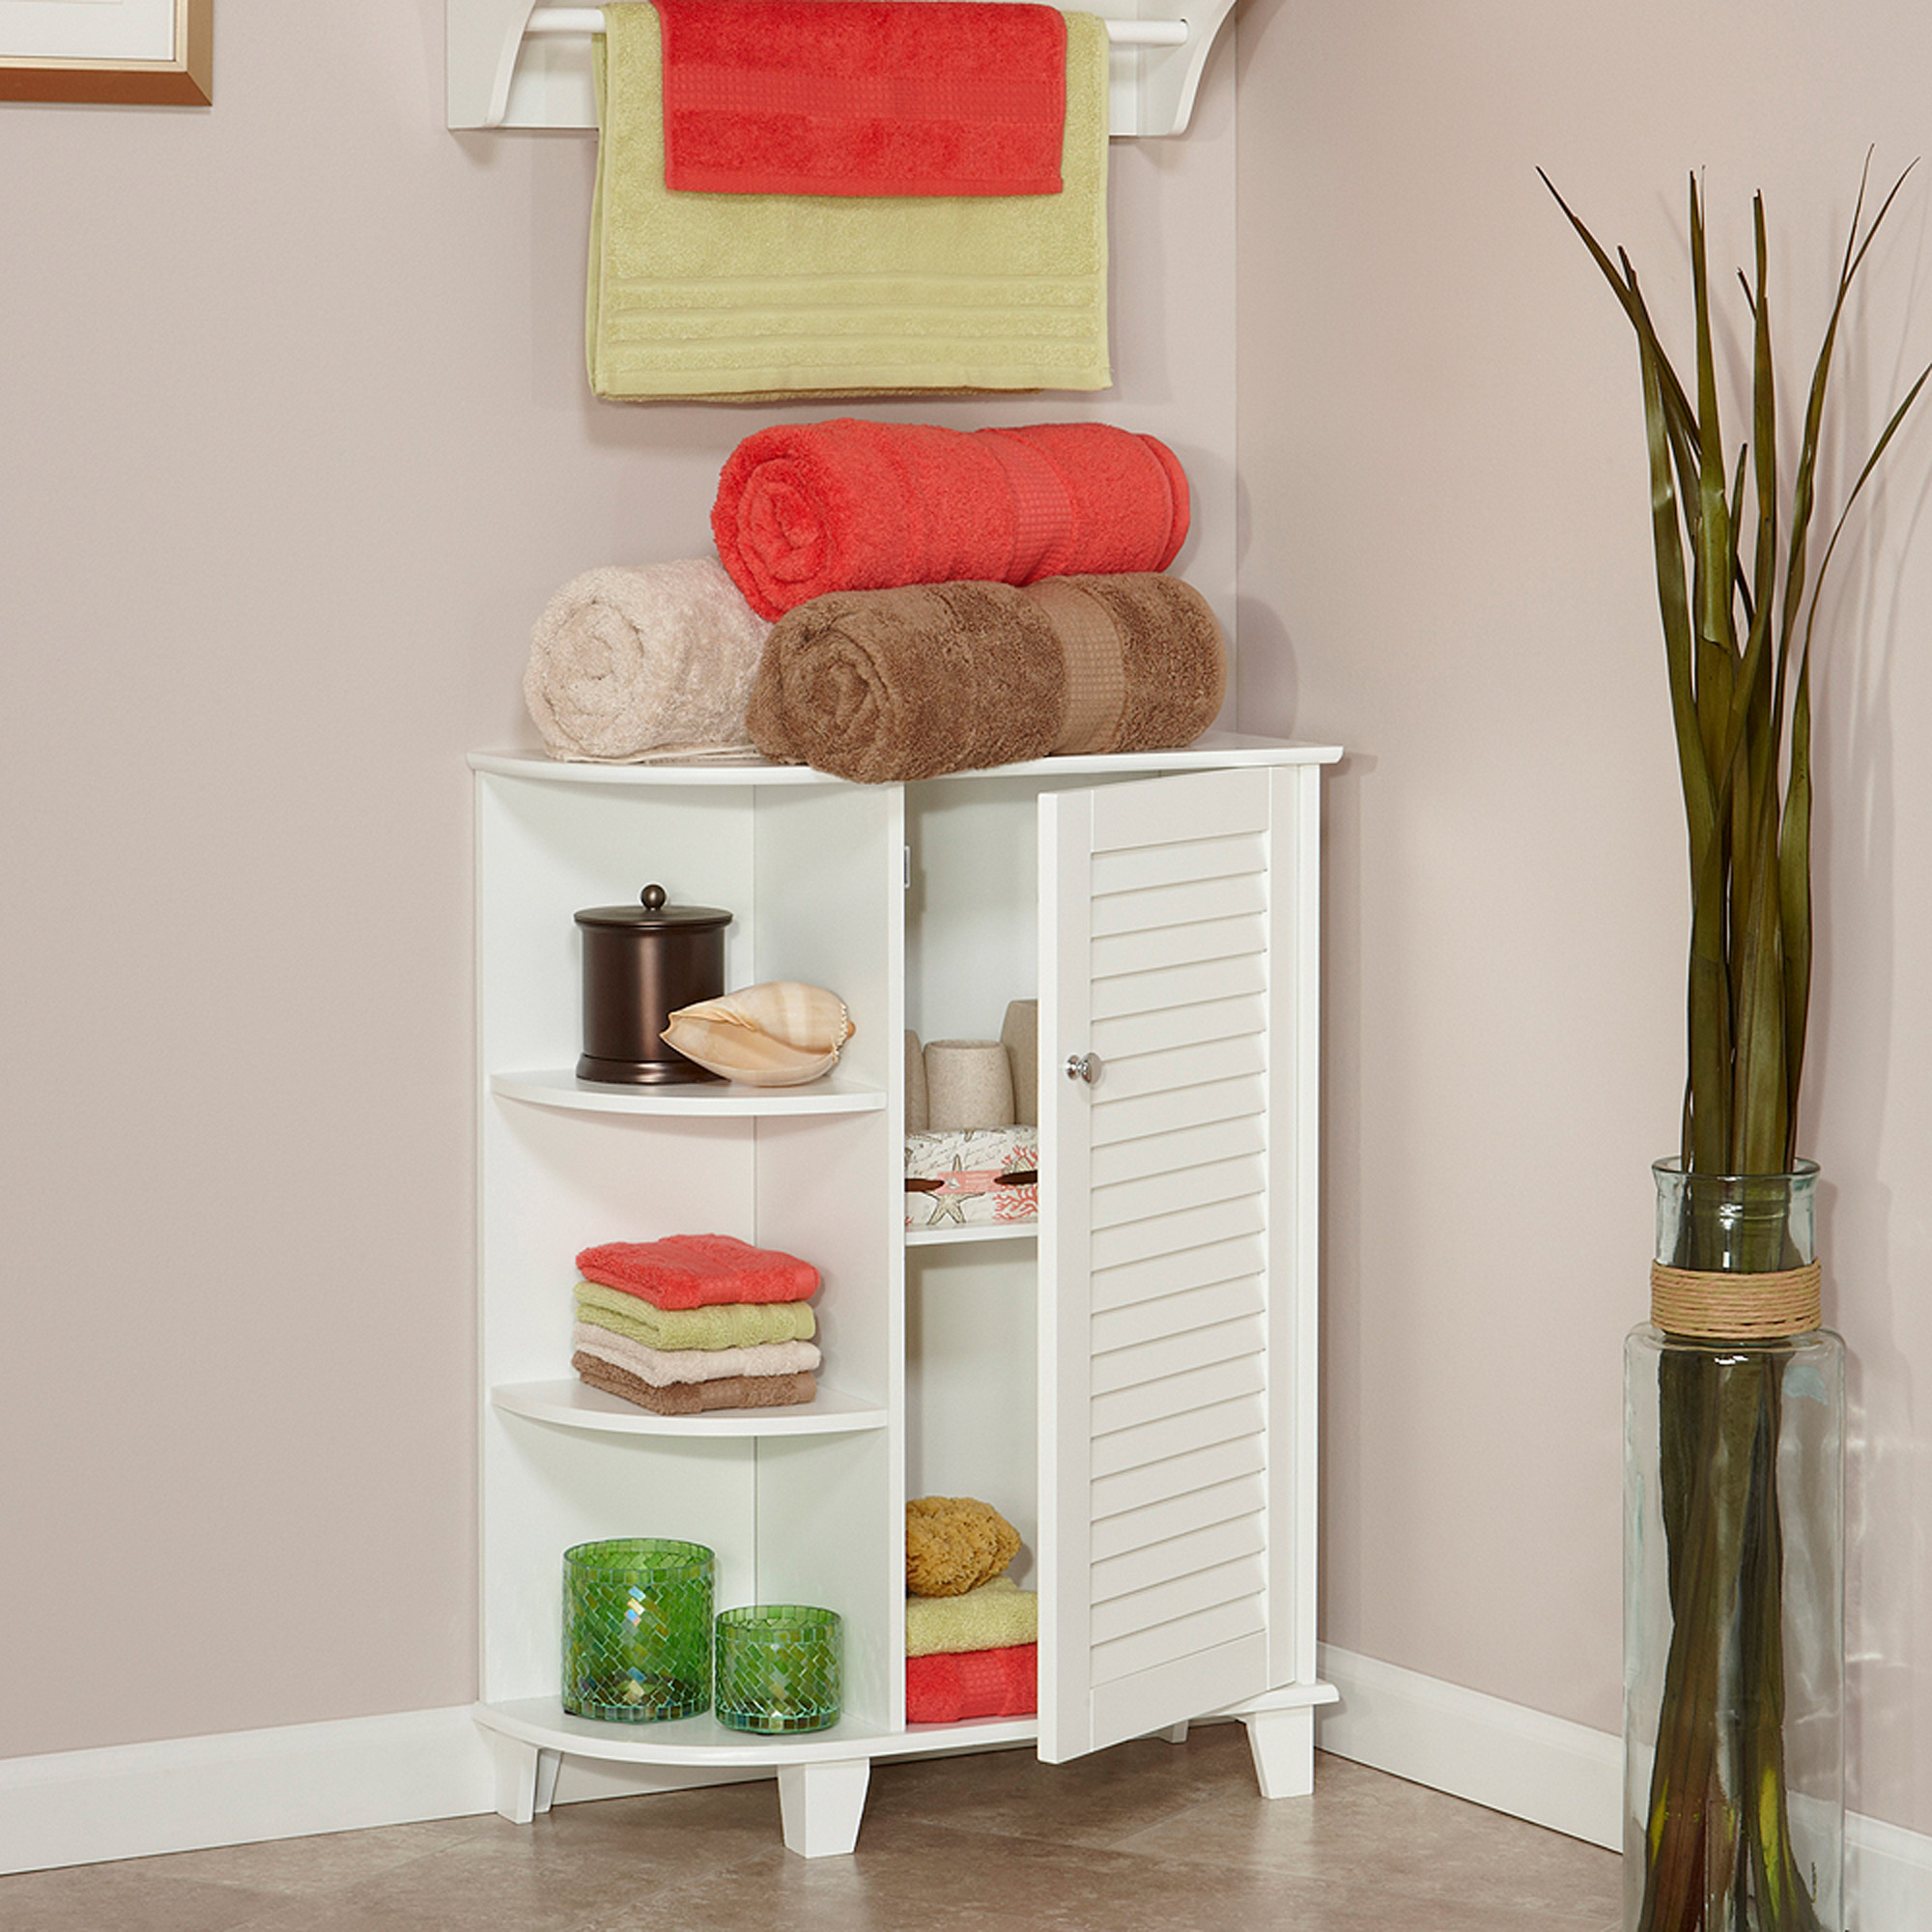 RiverRidge Ellsworth Floor Cabinet with Side Shelves, White